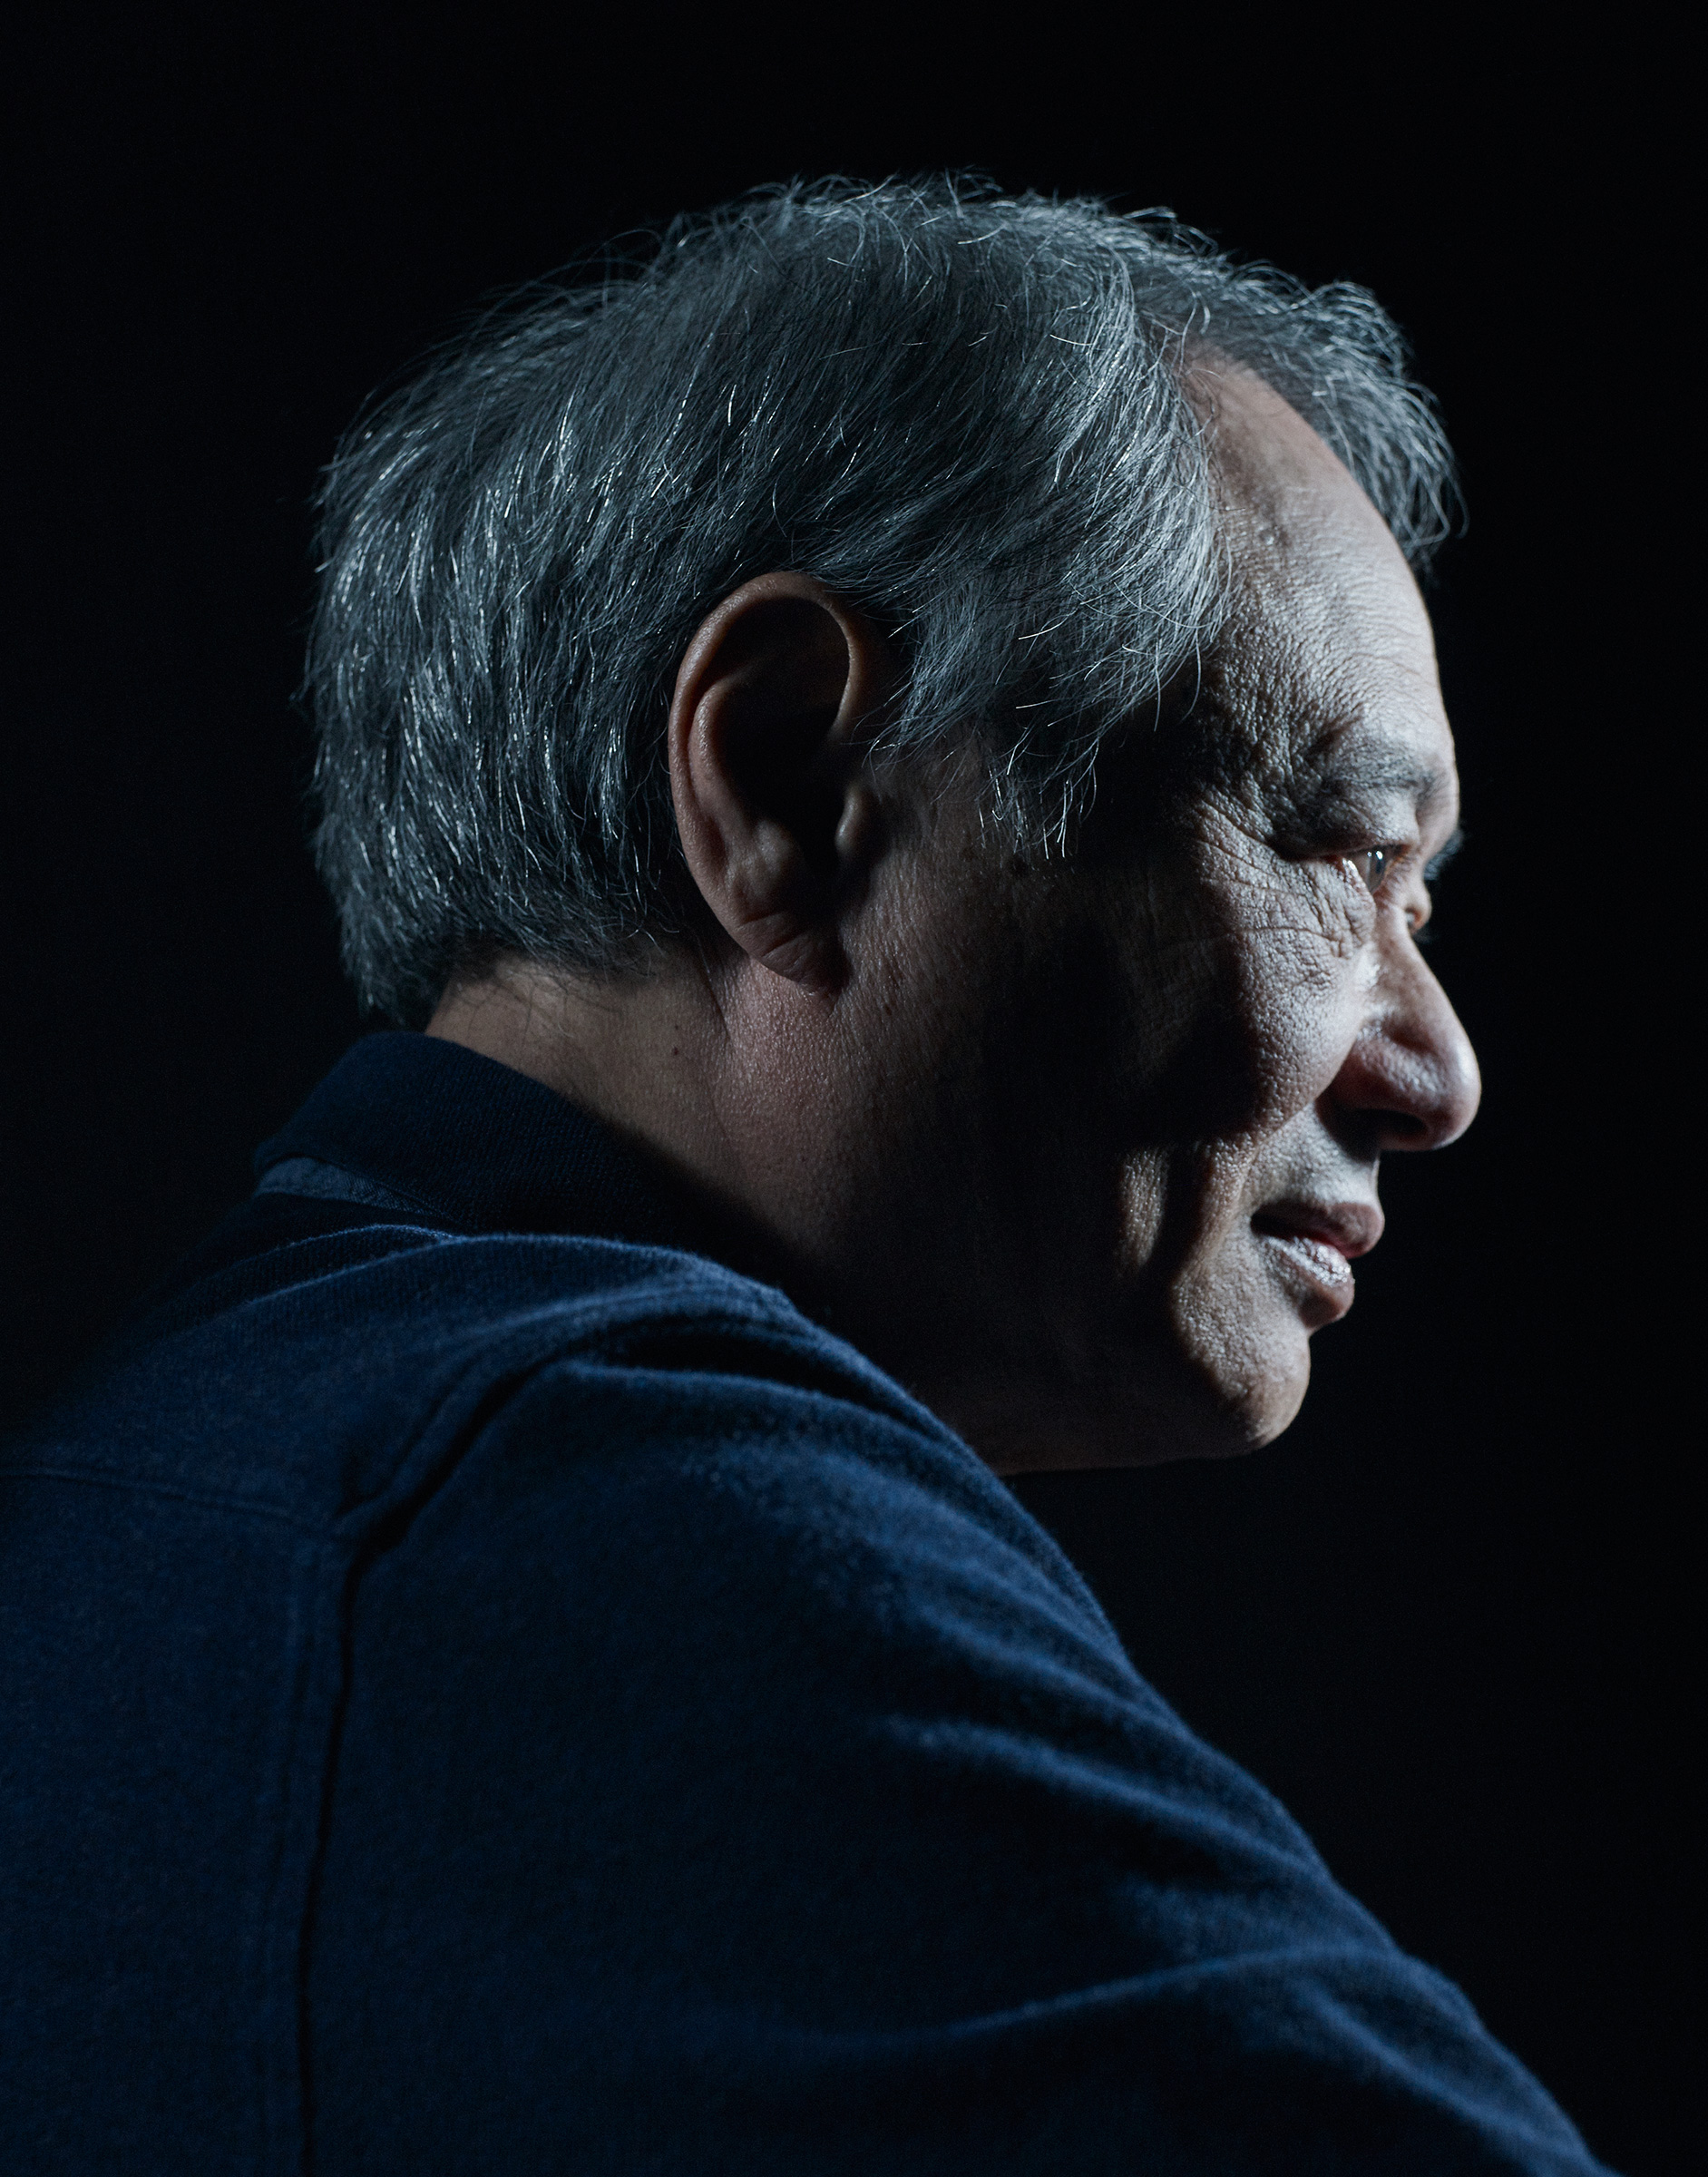 With Gemini Man, director Ang Lee pushes forward into 3-D filmmaking